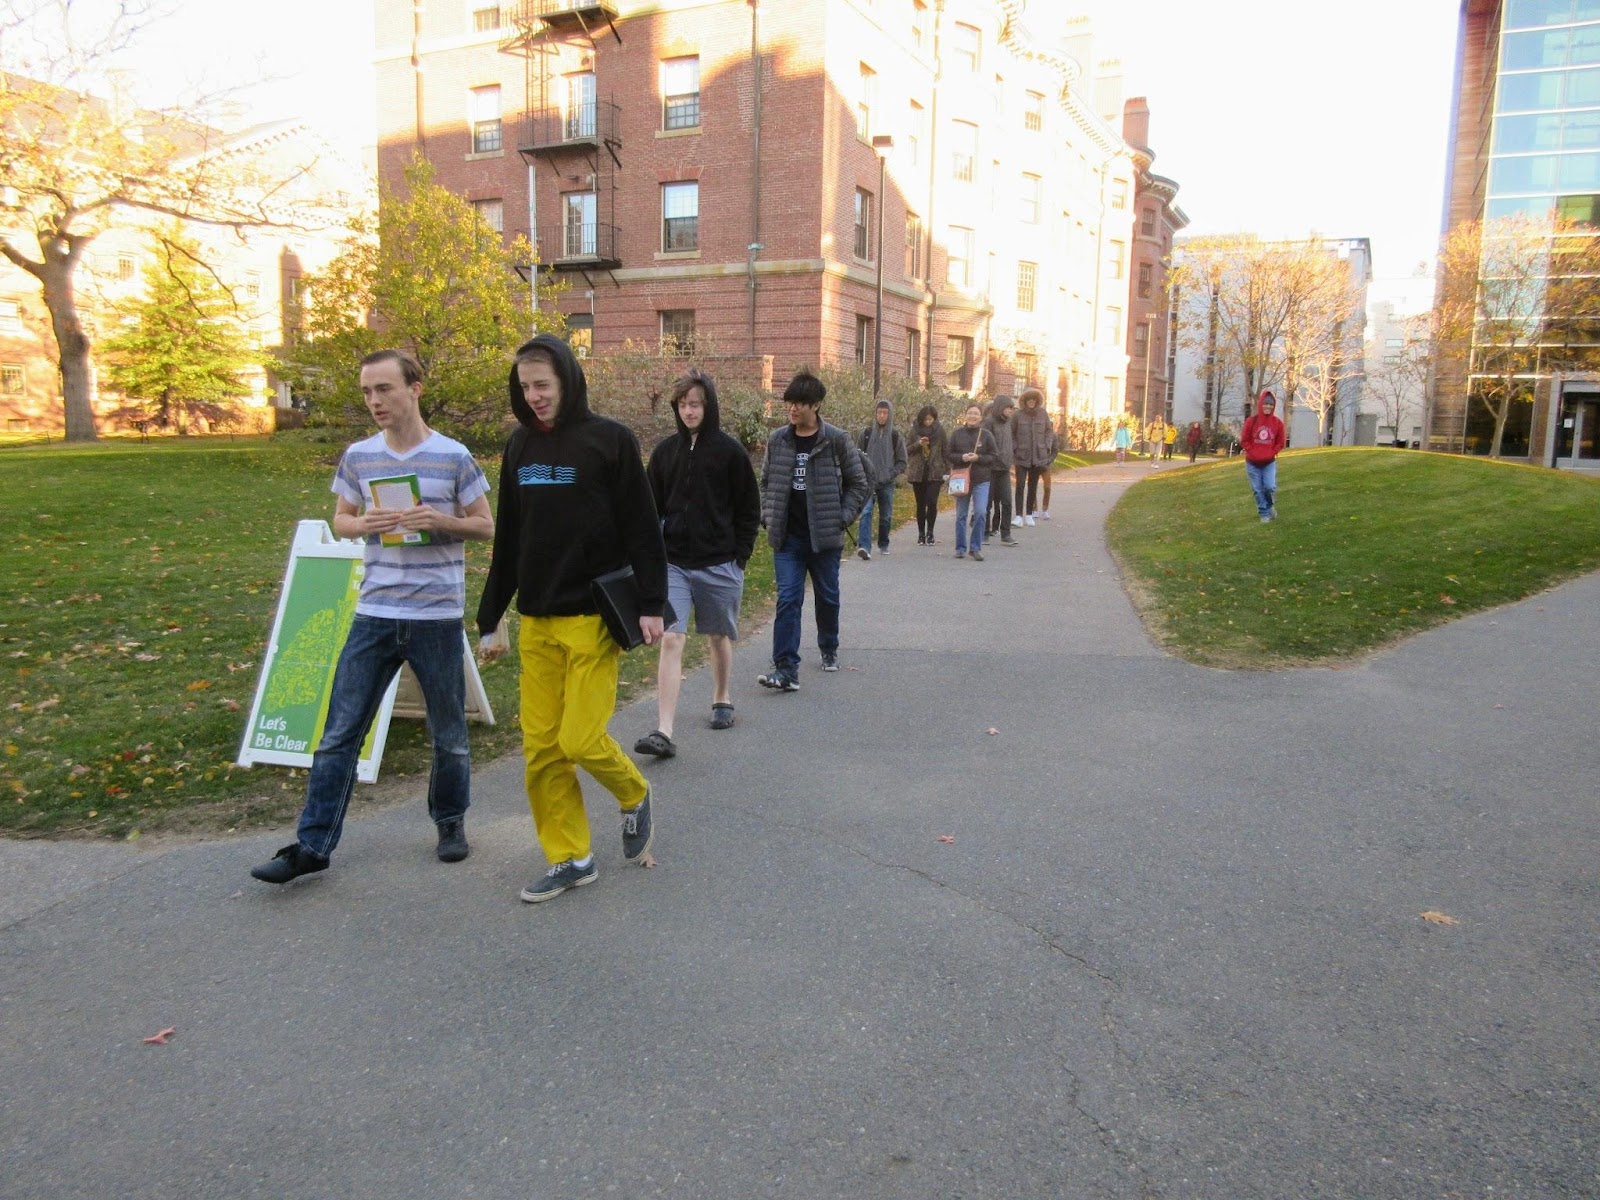 Marching across the Harvard campus on the way to the tournament.